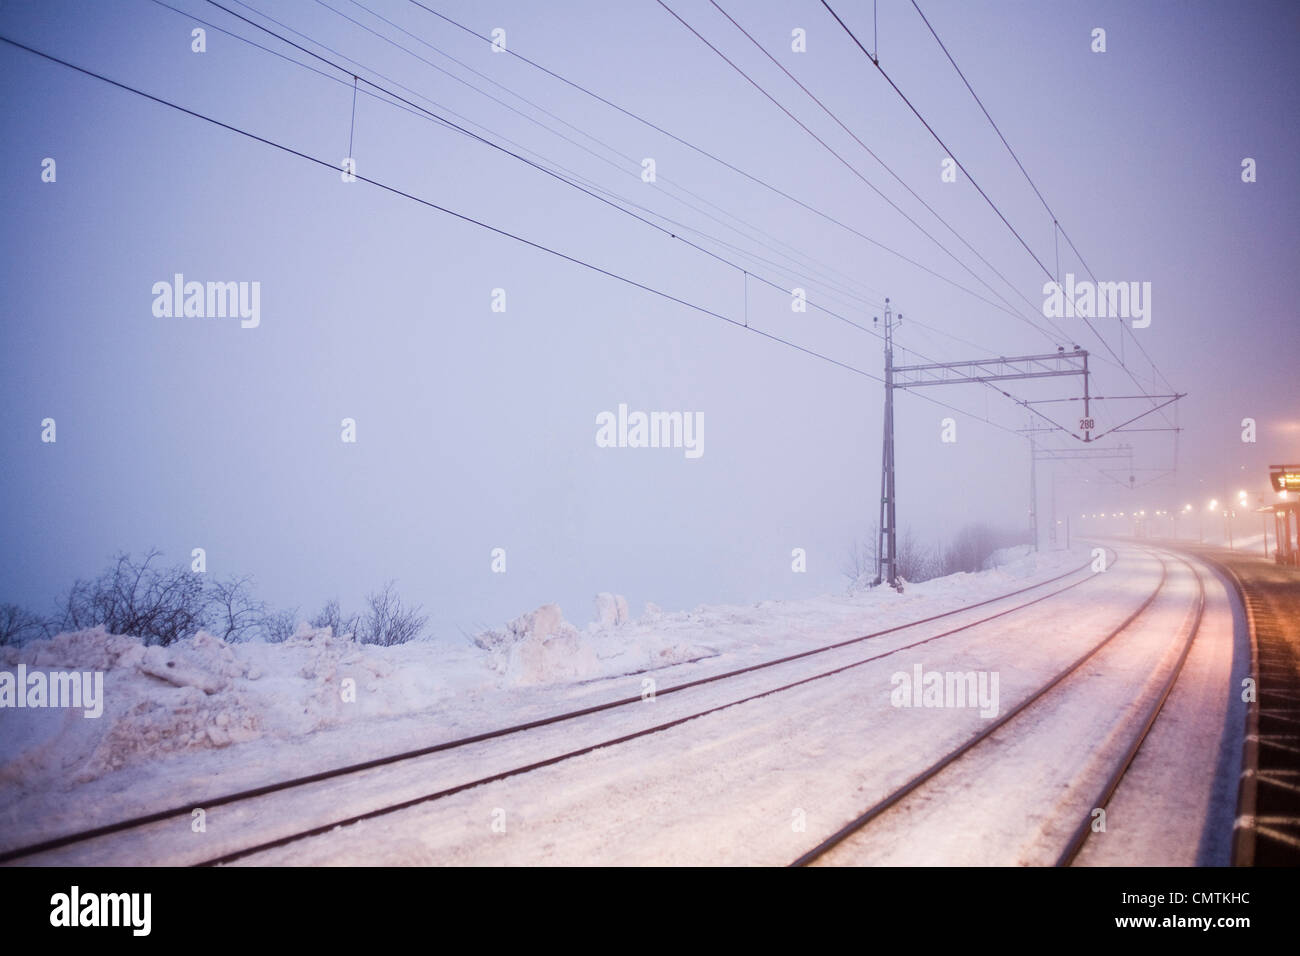 Snow-filled railway track a chilly winter evening - Stock Image